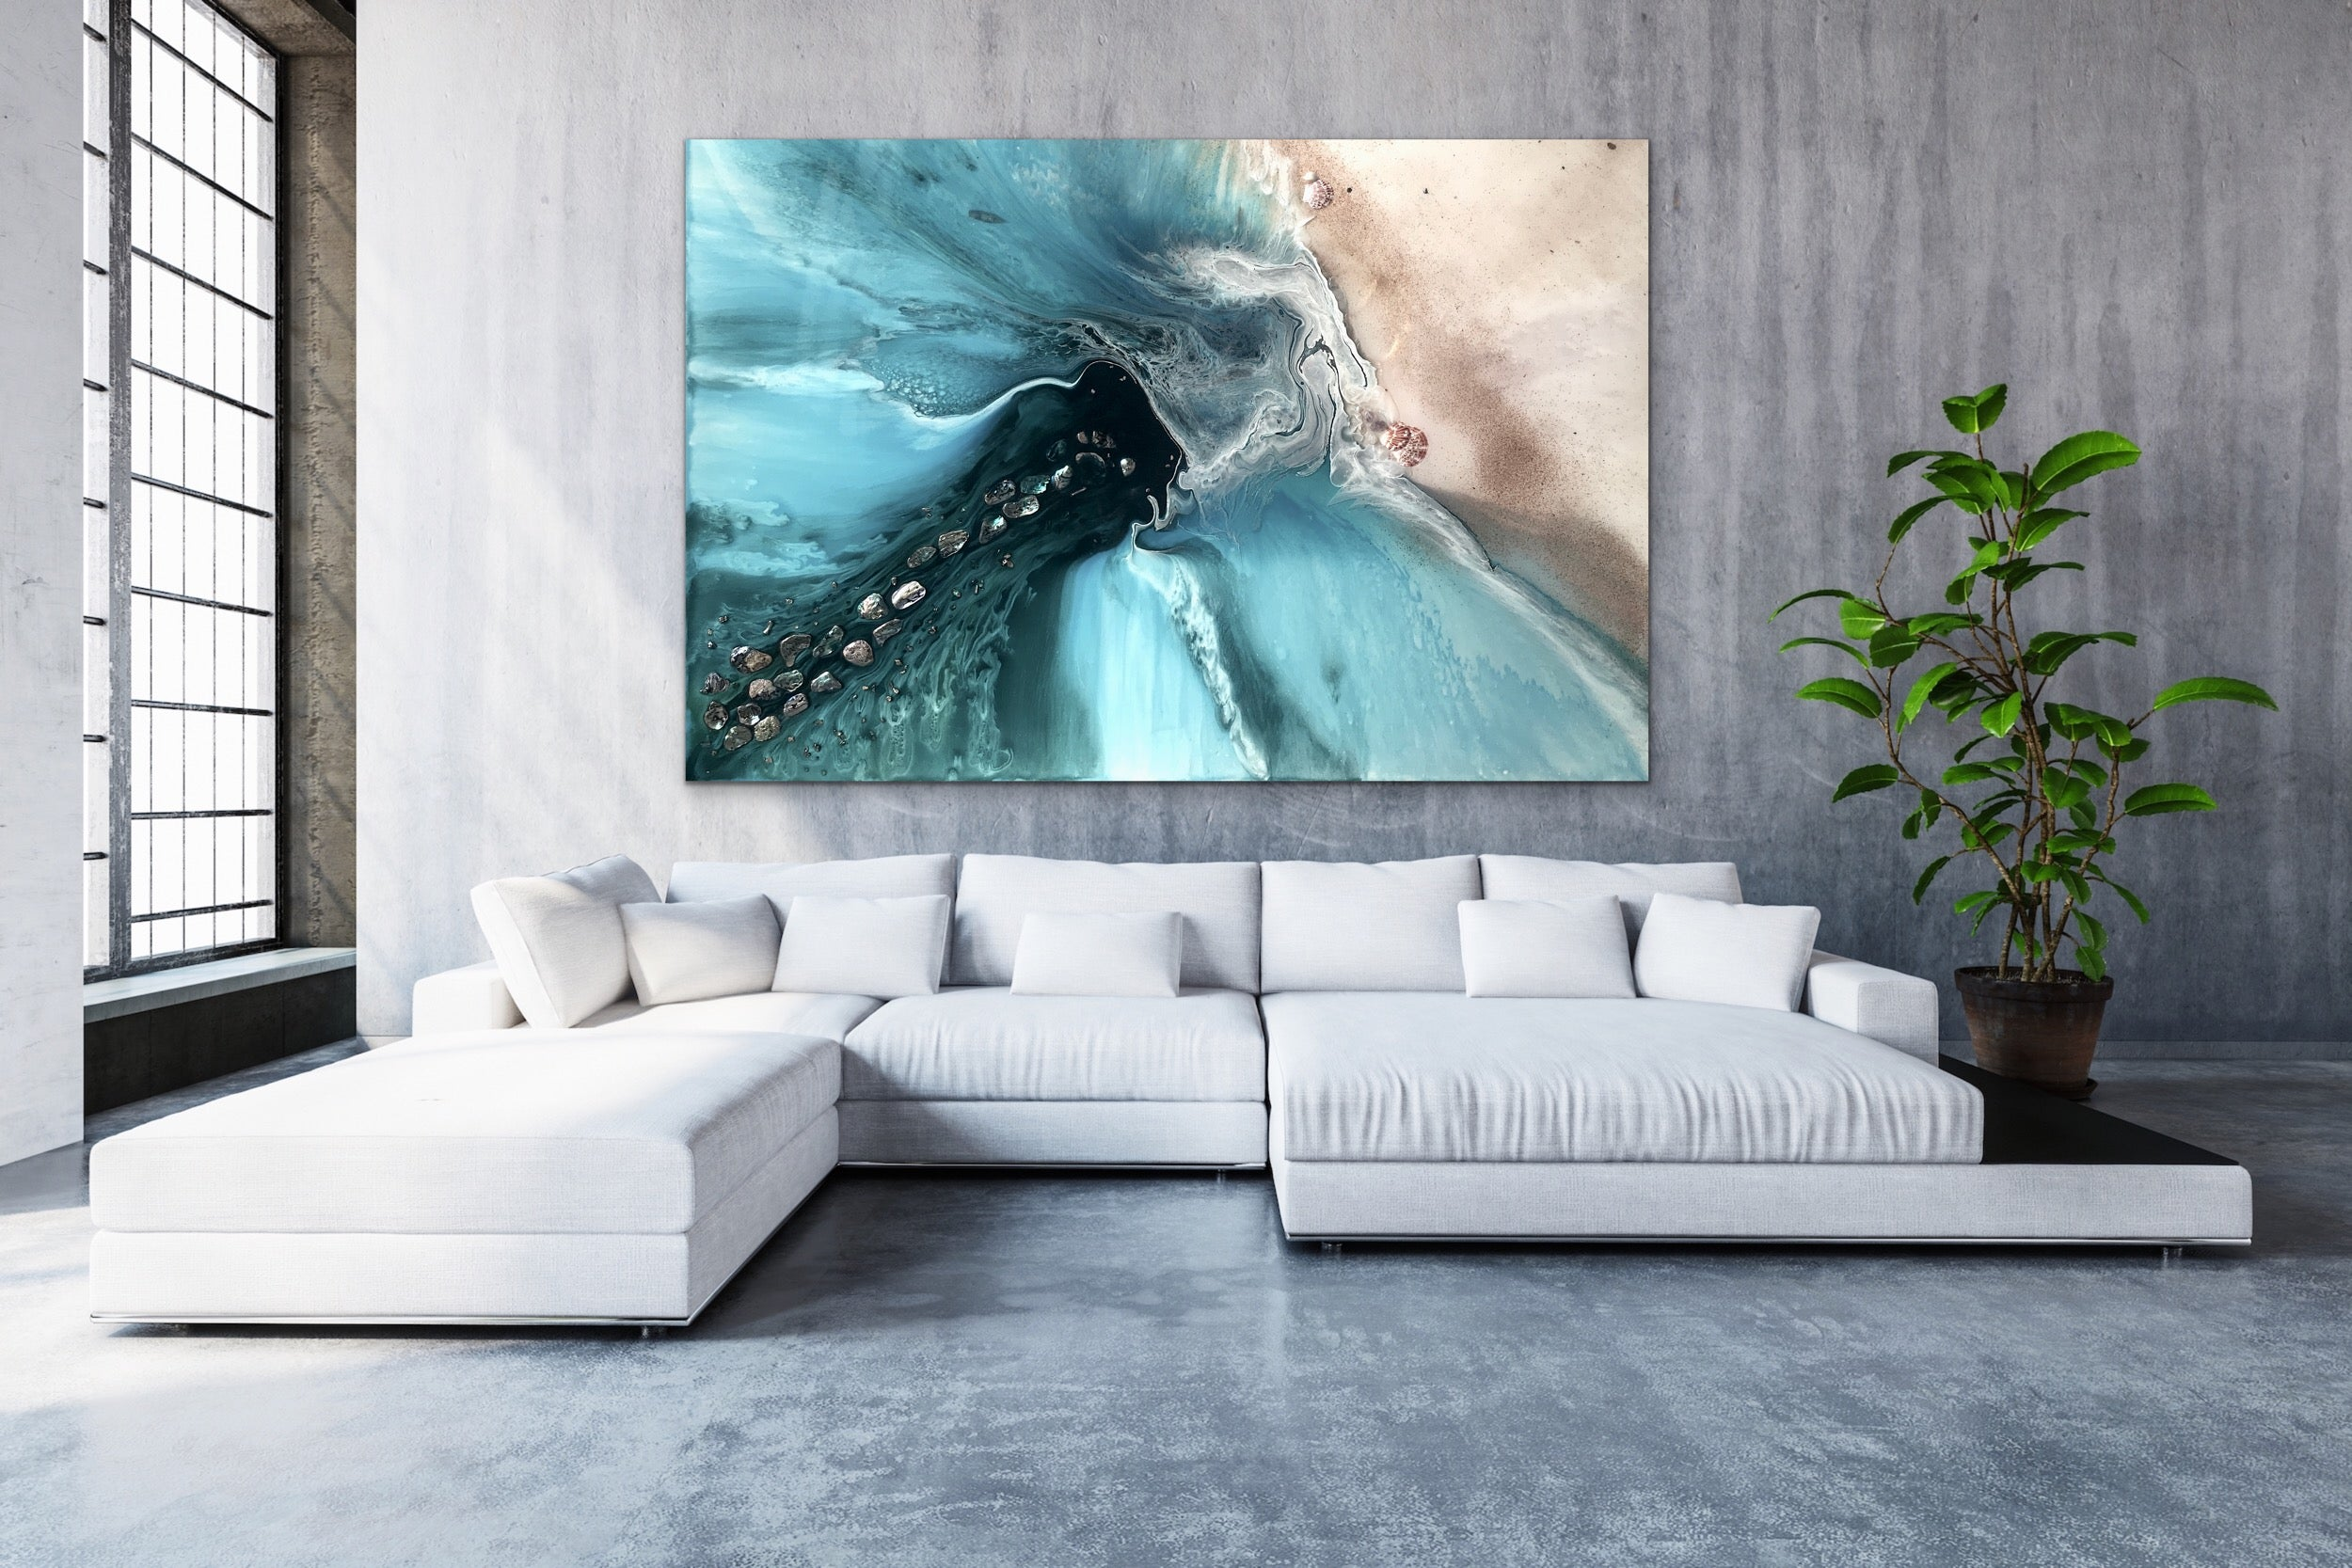 Abstract Sea. Muted Teal. Rise Above 4 Neutral. Art print. Antuanelle 6 Ocean Seascape. Limited Edition Print